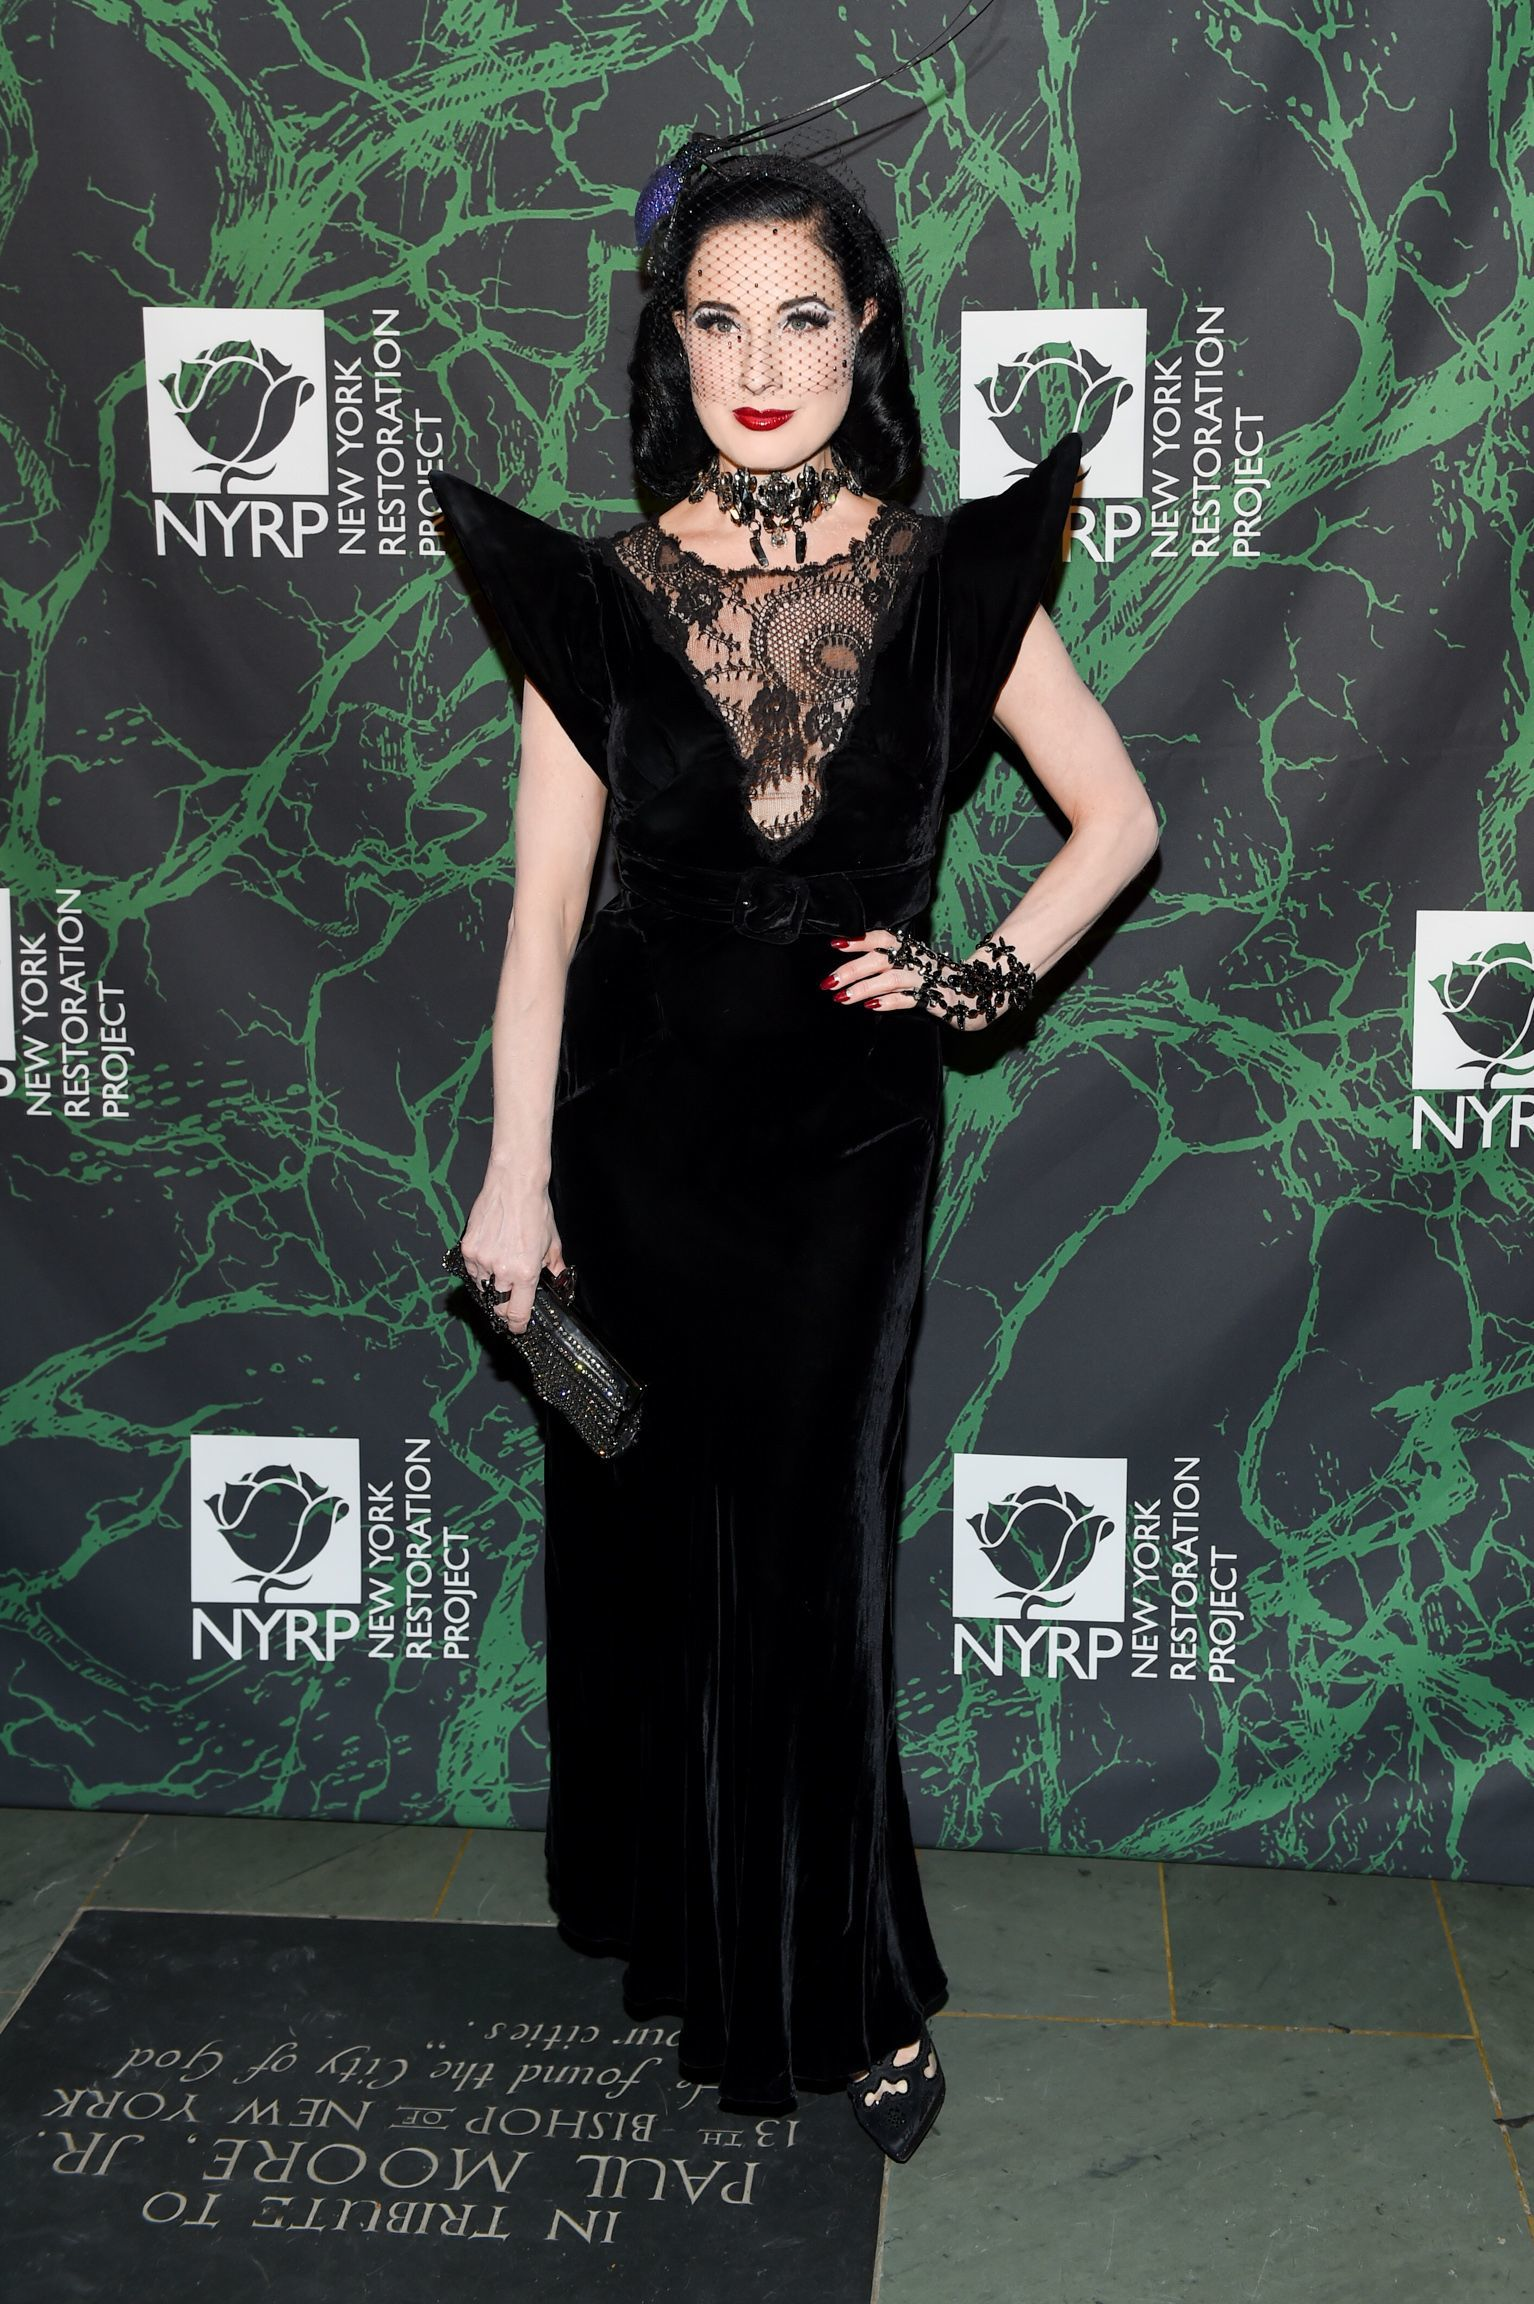 Dita Von Teese attends Bette Midler's Hulaween Party benefiting The New York Restoration Project in New York City on Oct. 30, 2017.